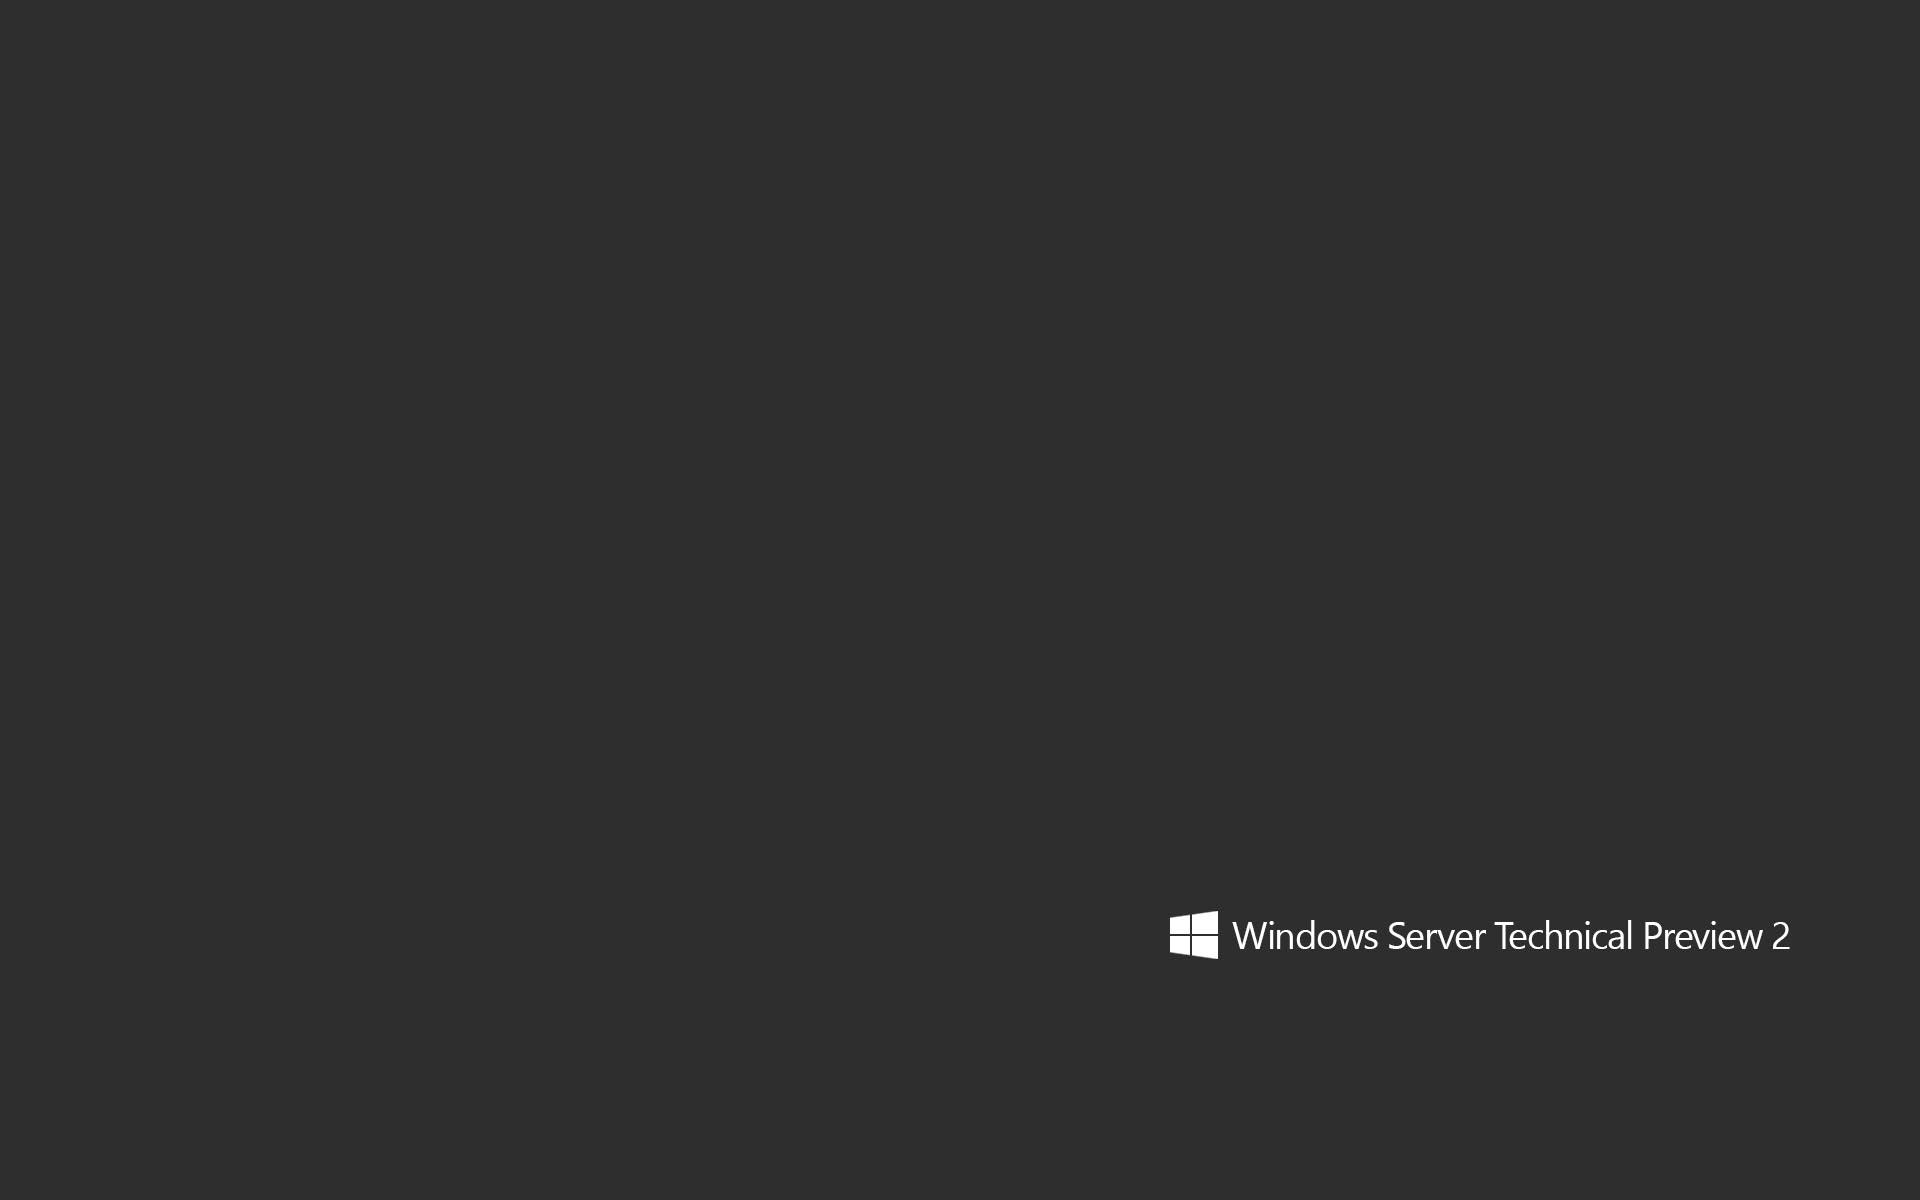 วิธีตั้งค่า Desktop Backgrounds บน Windows Server 2016 Technical